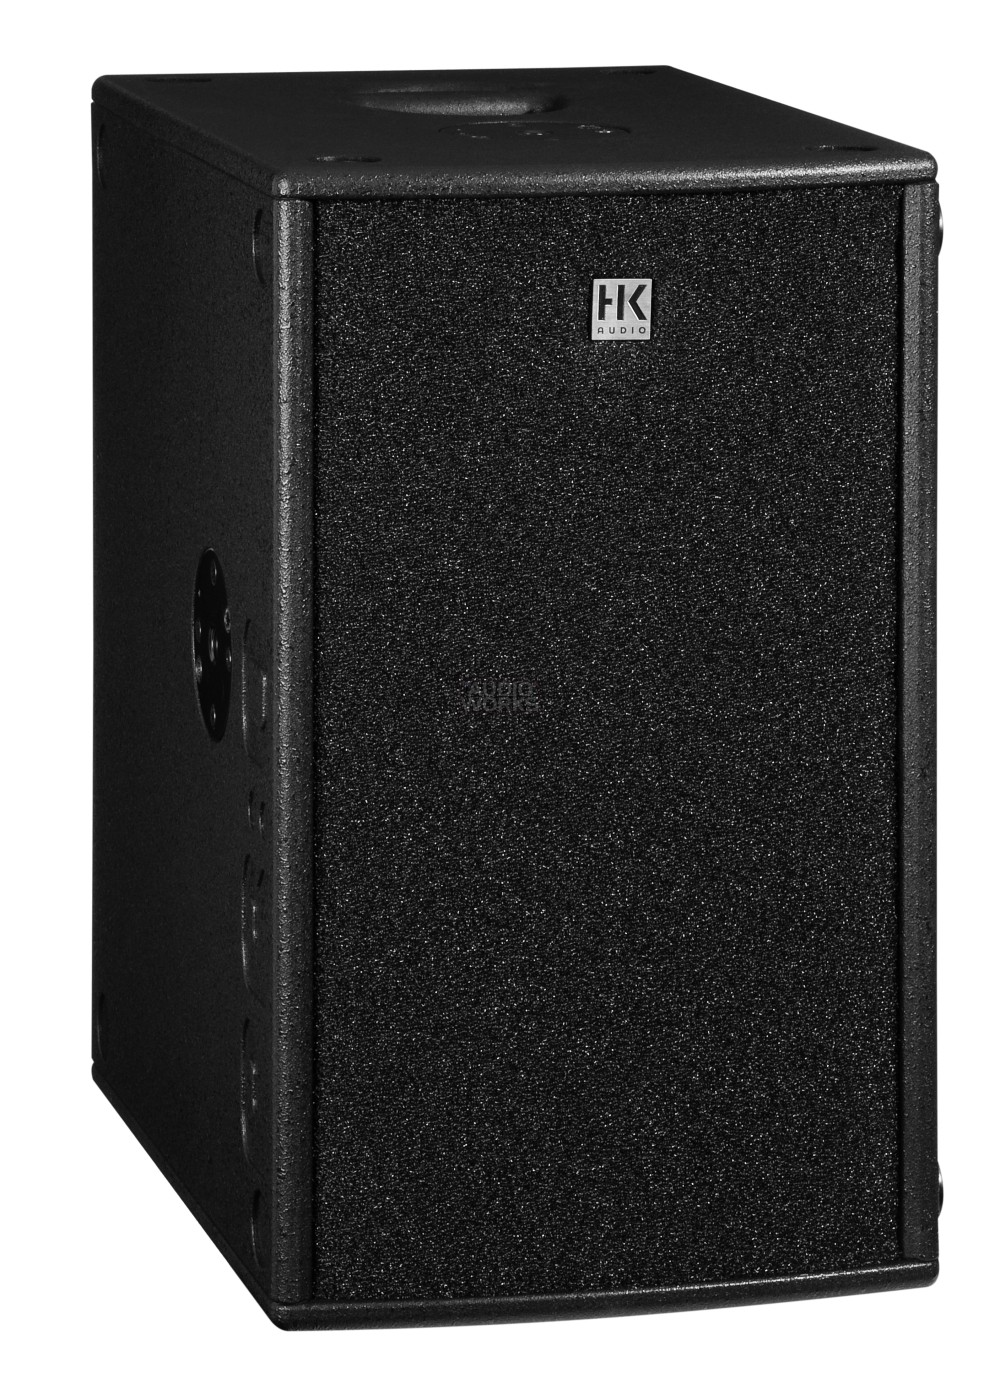 HK AUDIO PREMIUM PRO 210AS 600W RMS PROFESSIONAL ACTIVE SUBWOOFER